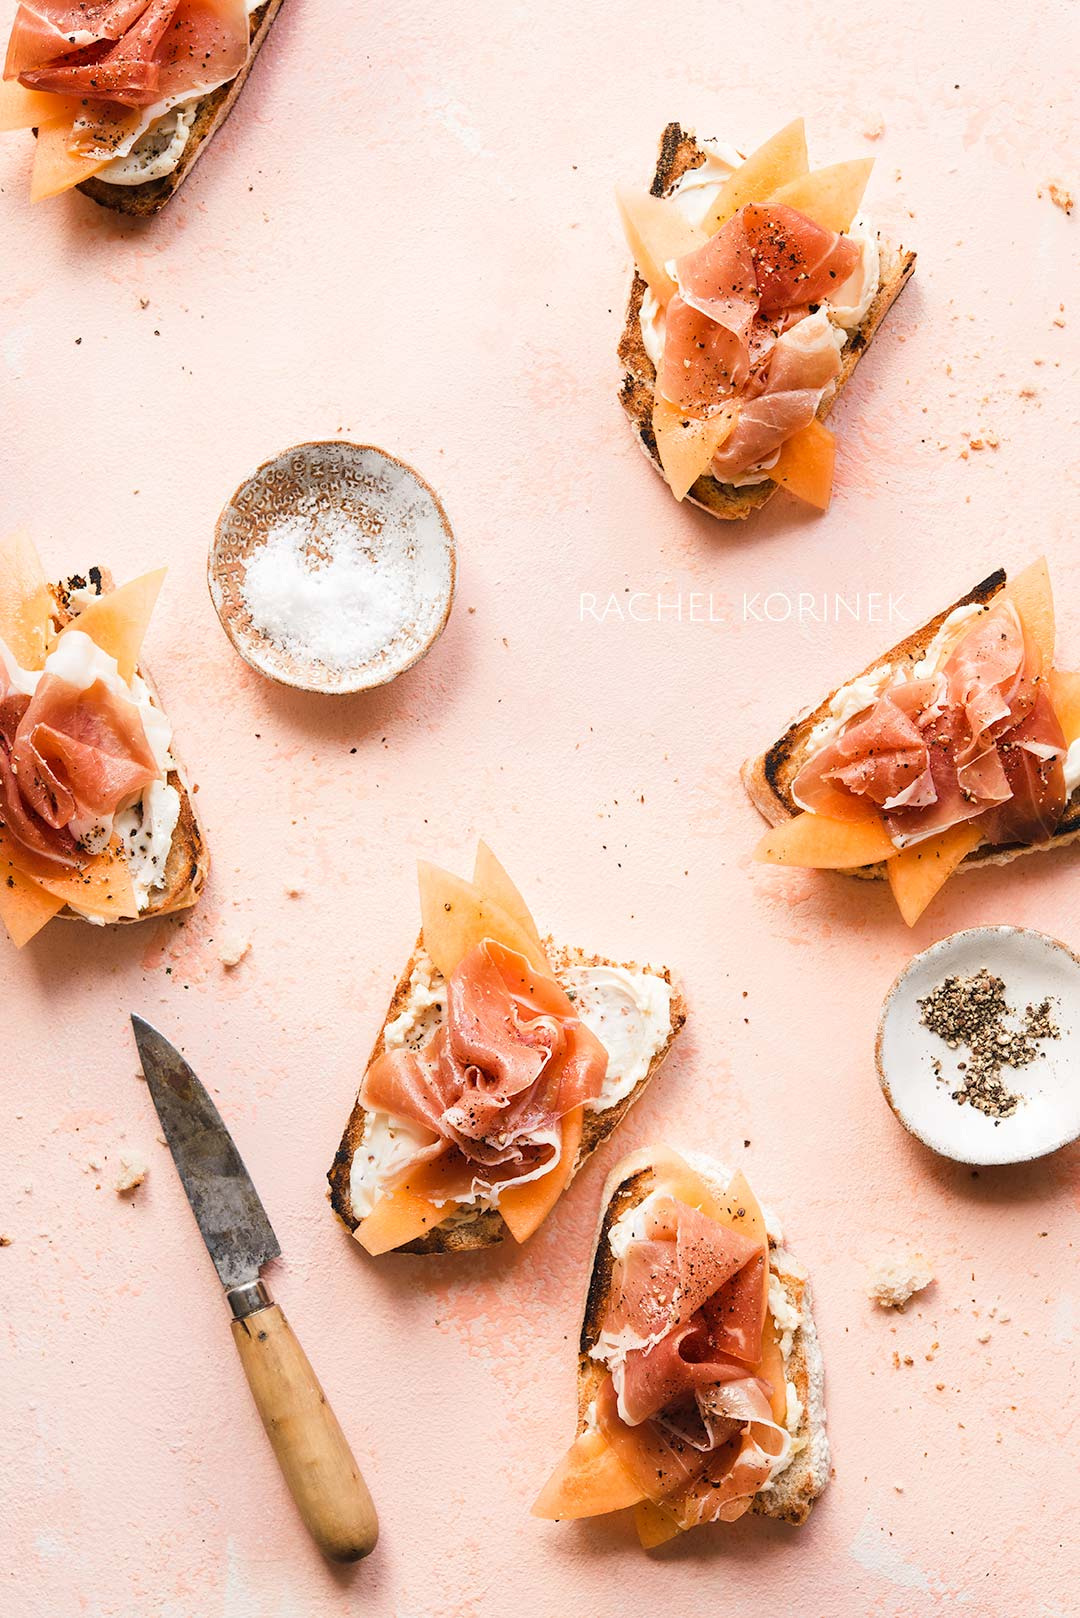 Rachel Korinek Food Photographer | Prosciutto Toast  Click to check out my latest food photography projects.  #twolovesstudio #beautifulcuisine #foodbloggerpro #foodphotography #learnfoodphotography #foodblogger #learnphotography #foodstyling #lightingtips #naturallight #foodphotographer